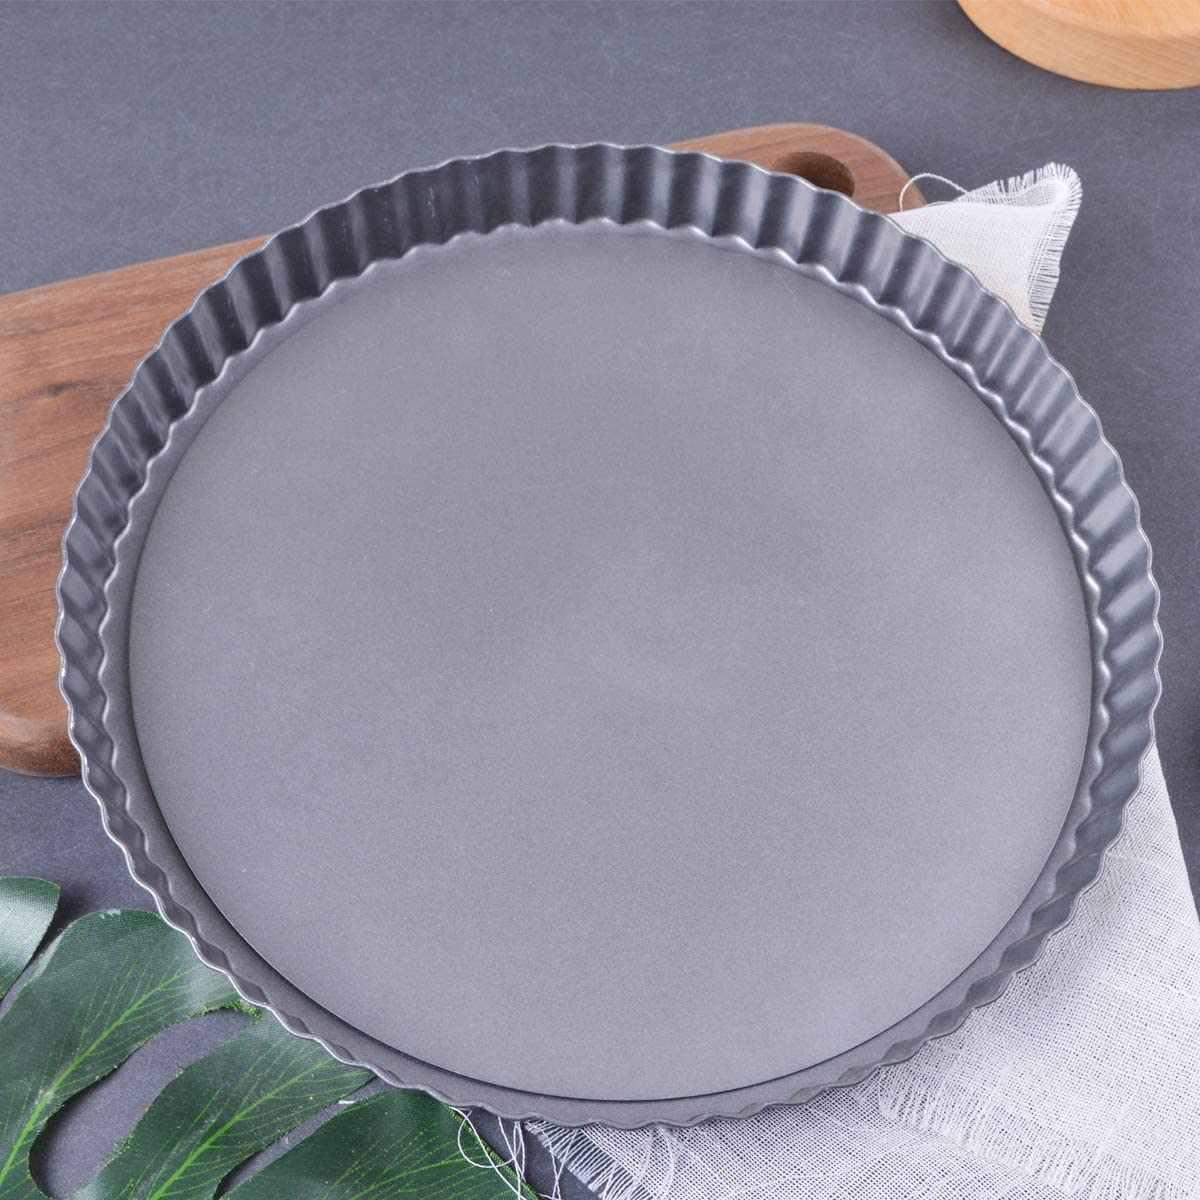 Tart Pan Cheesecake Tins Removable Base Perfect for Pie Dishes /& Quiche Dishes Non-Stick 28cm Tart Tin